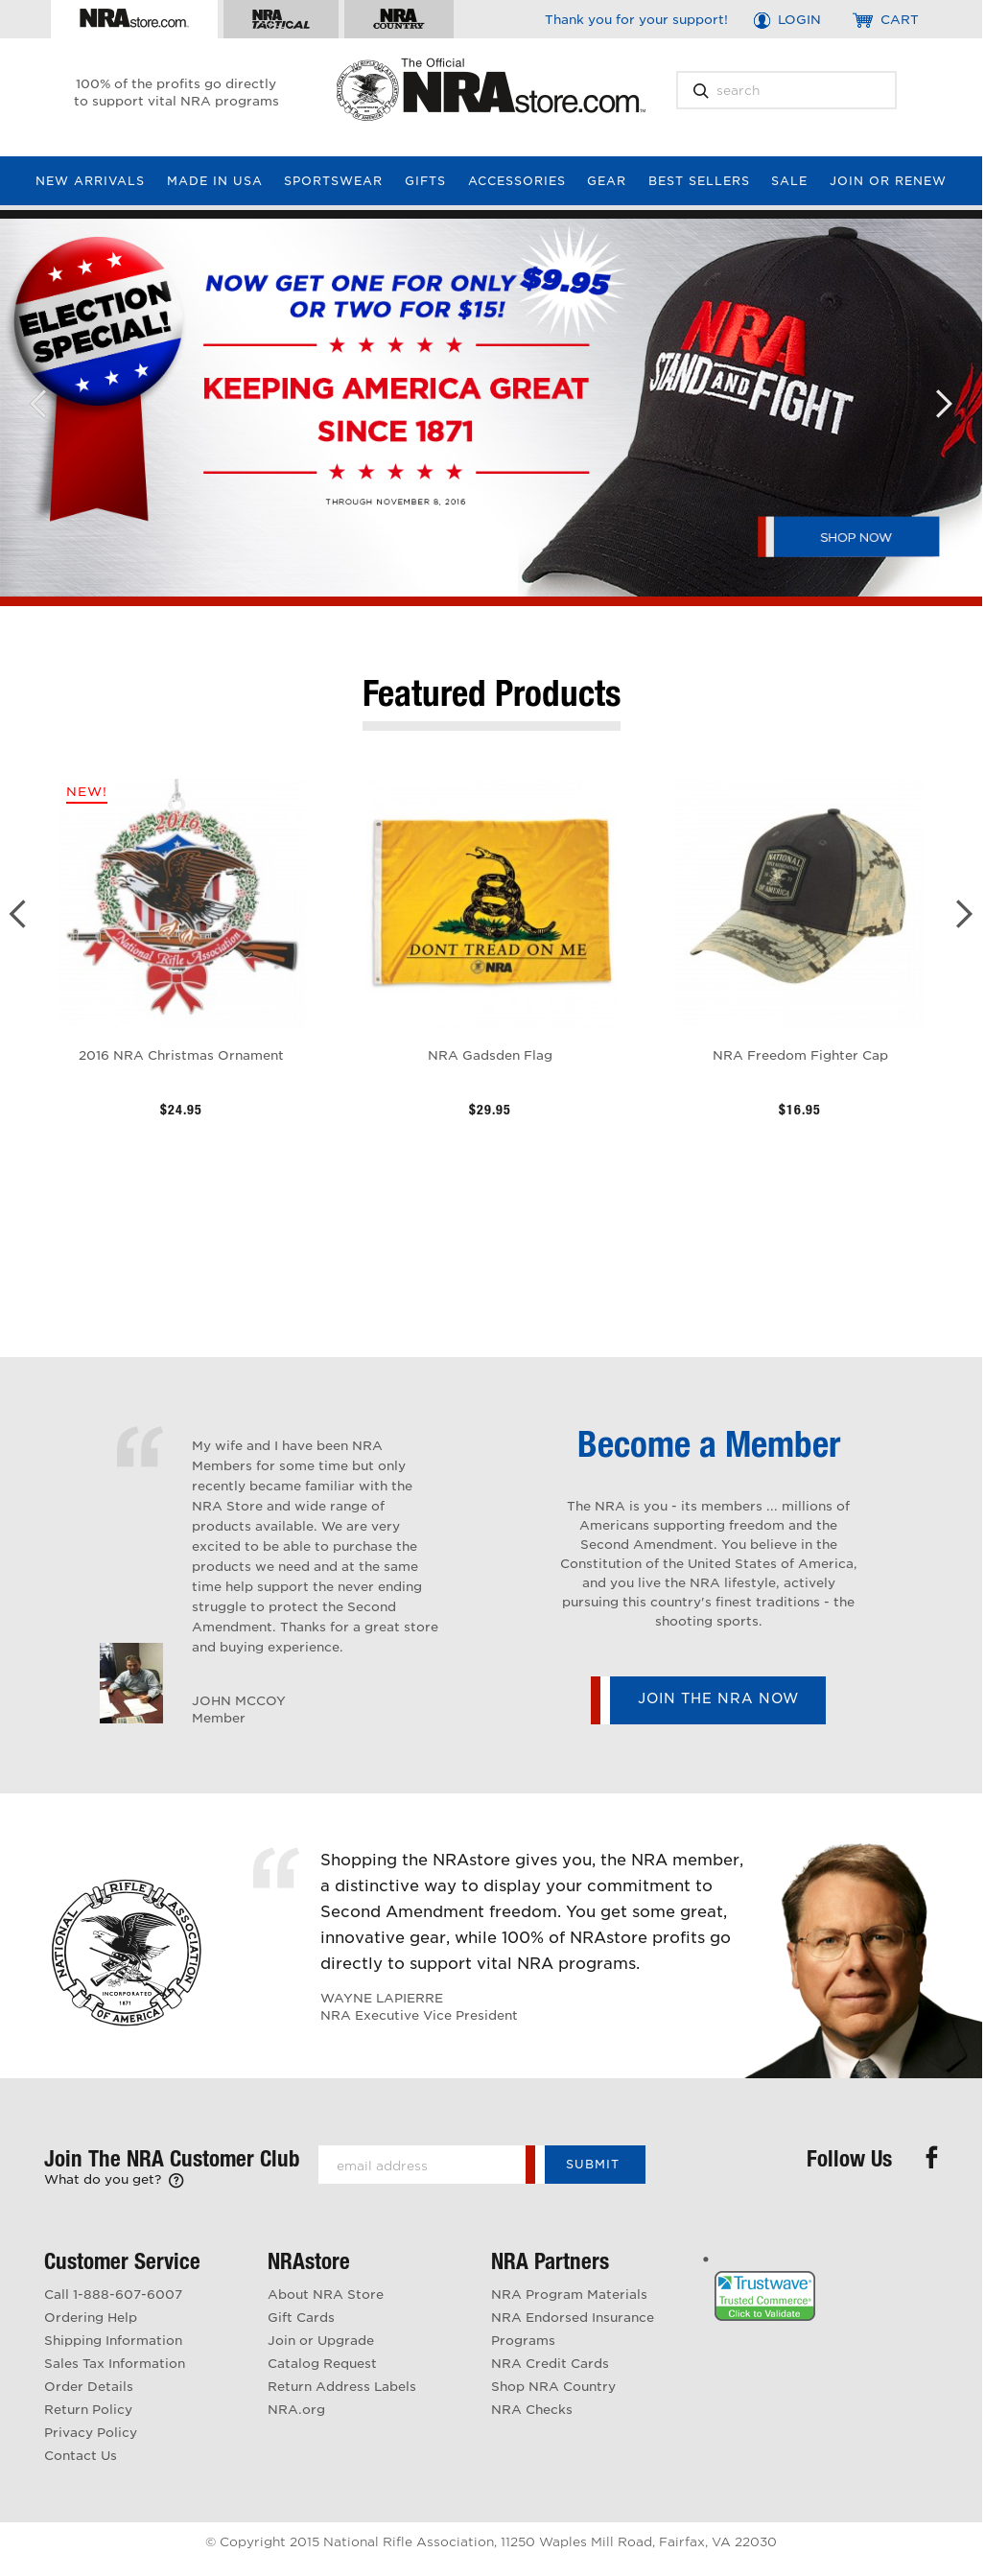 Nrastore Competitors, Revenue and Employees - Owler Company Profile